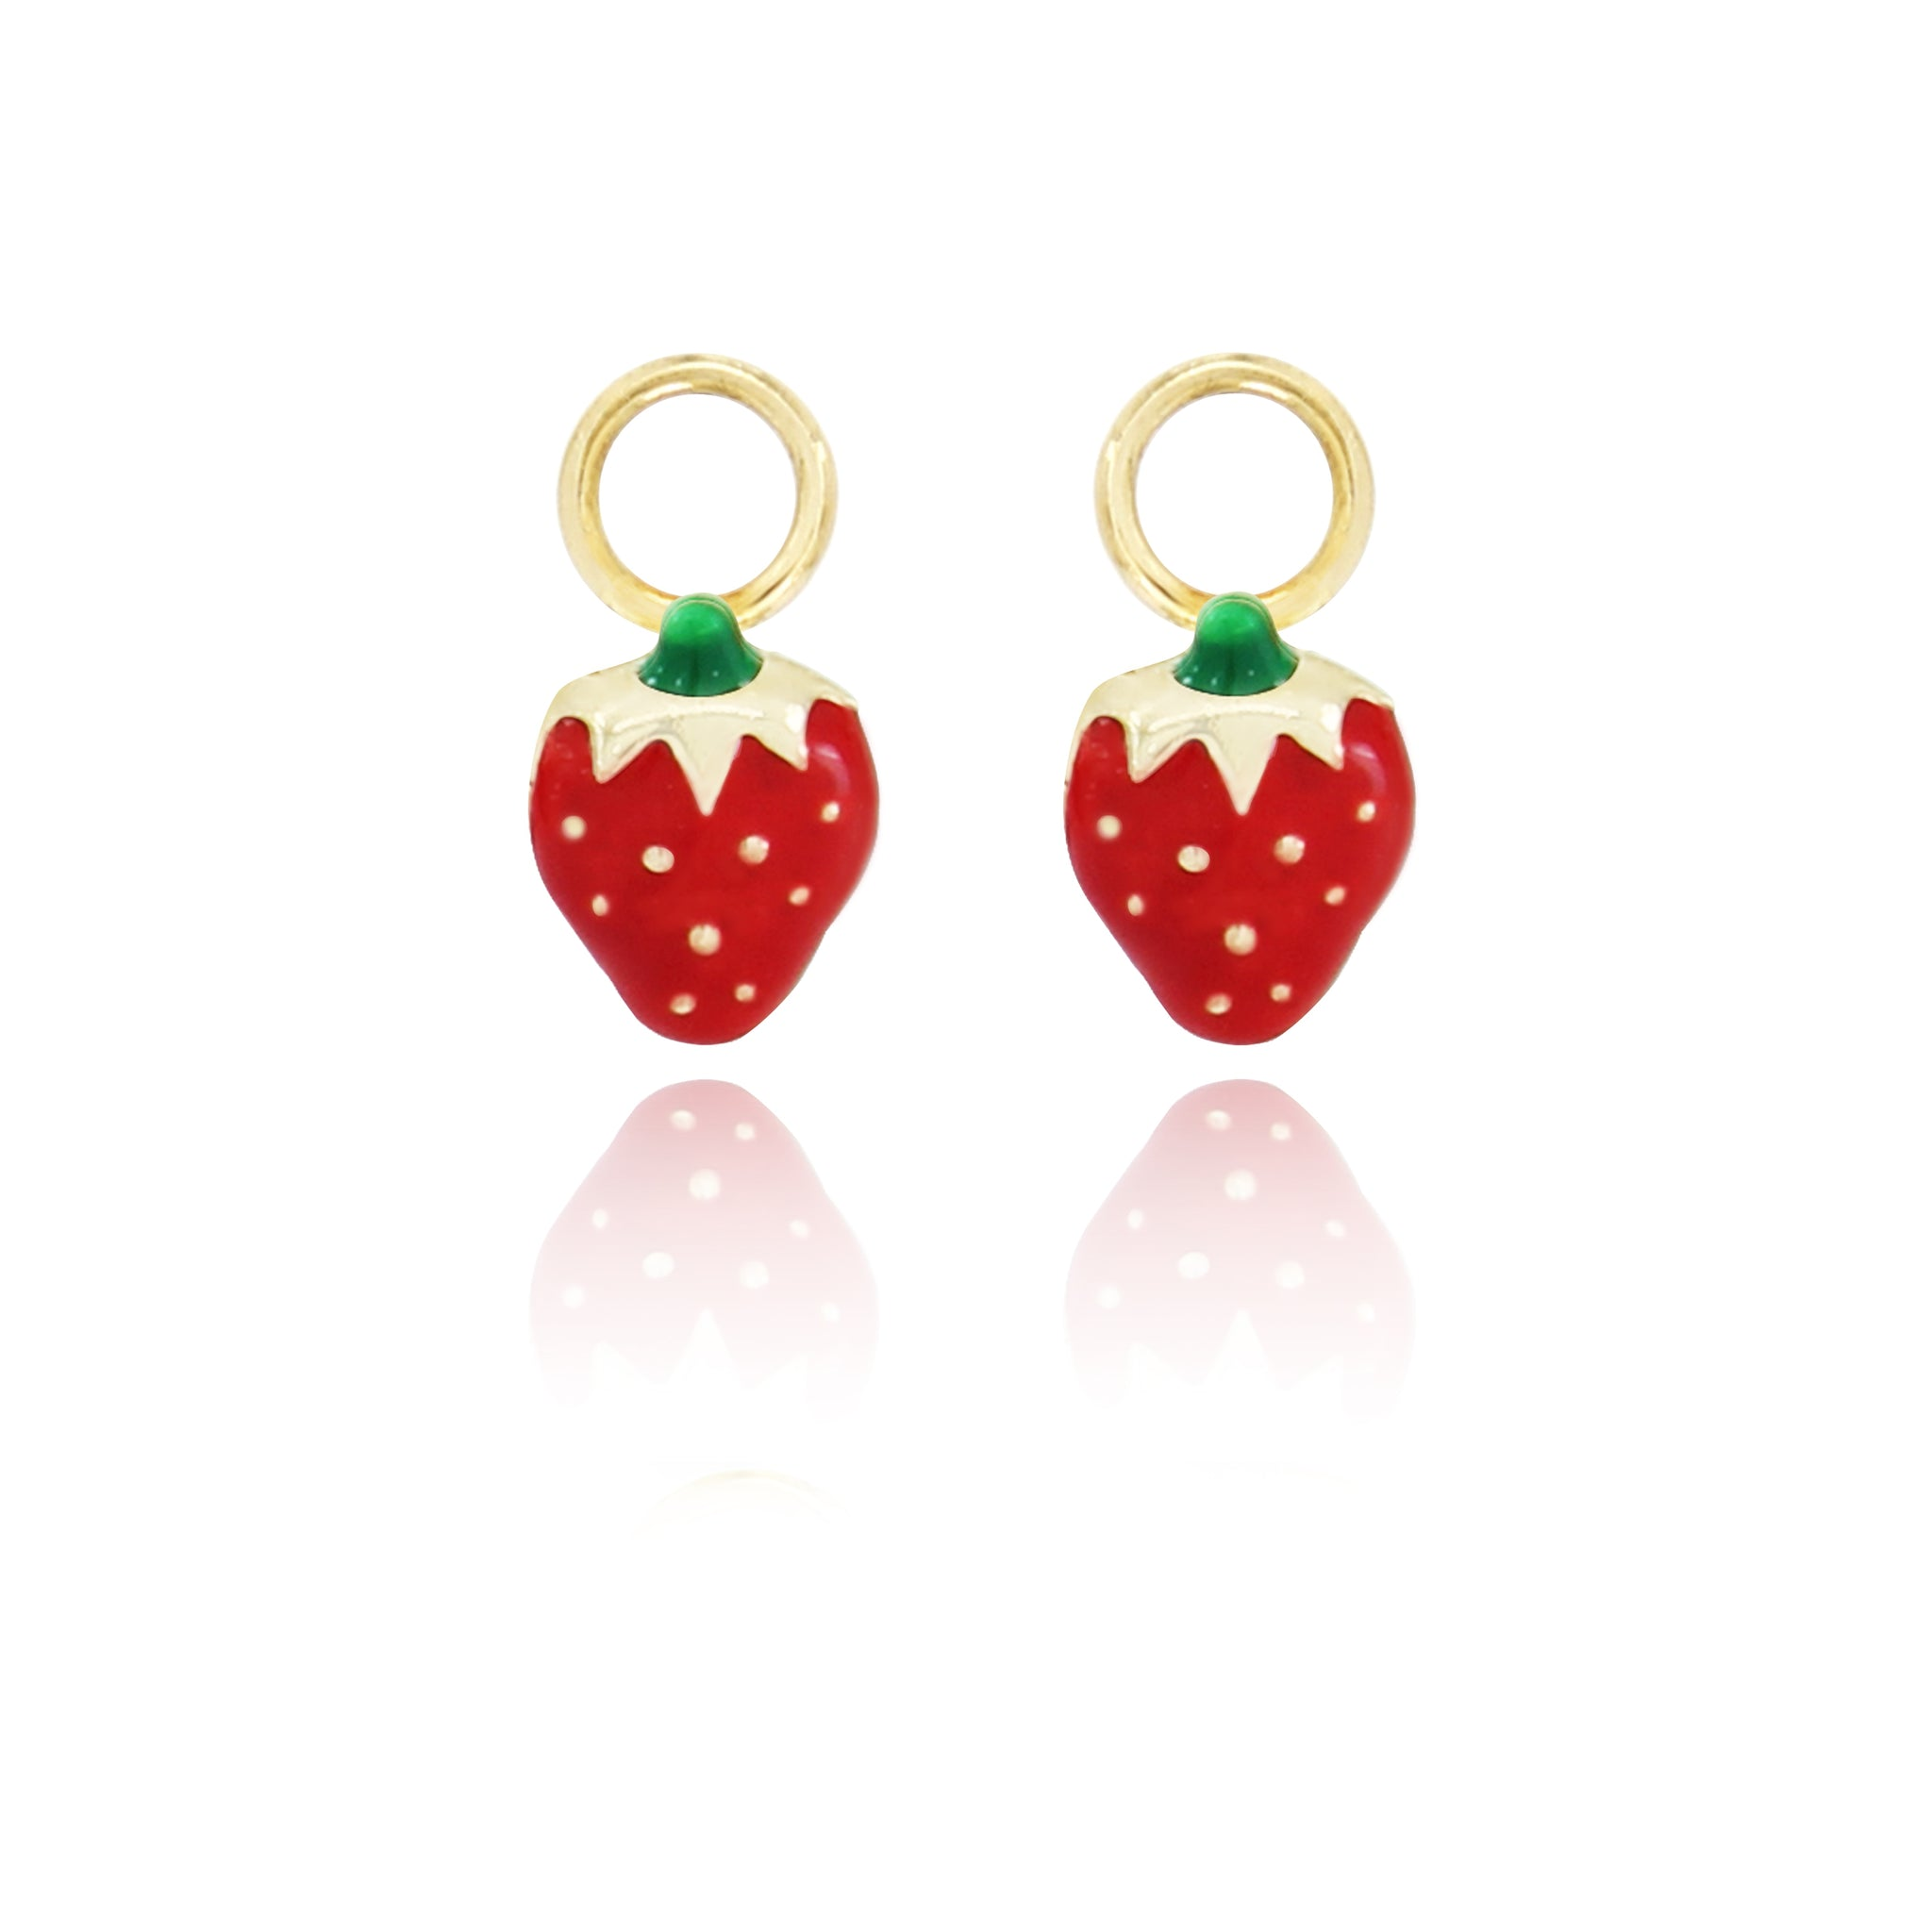 Berrylicious Charm - Red